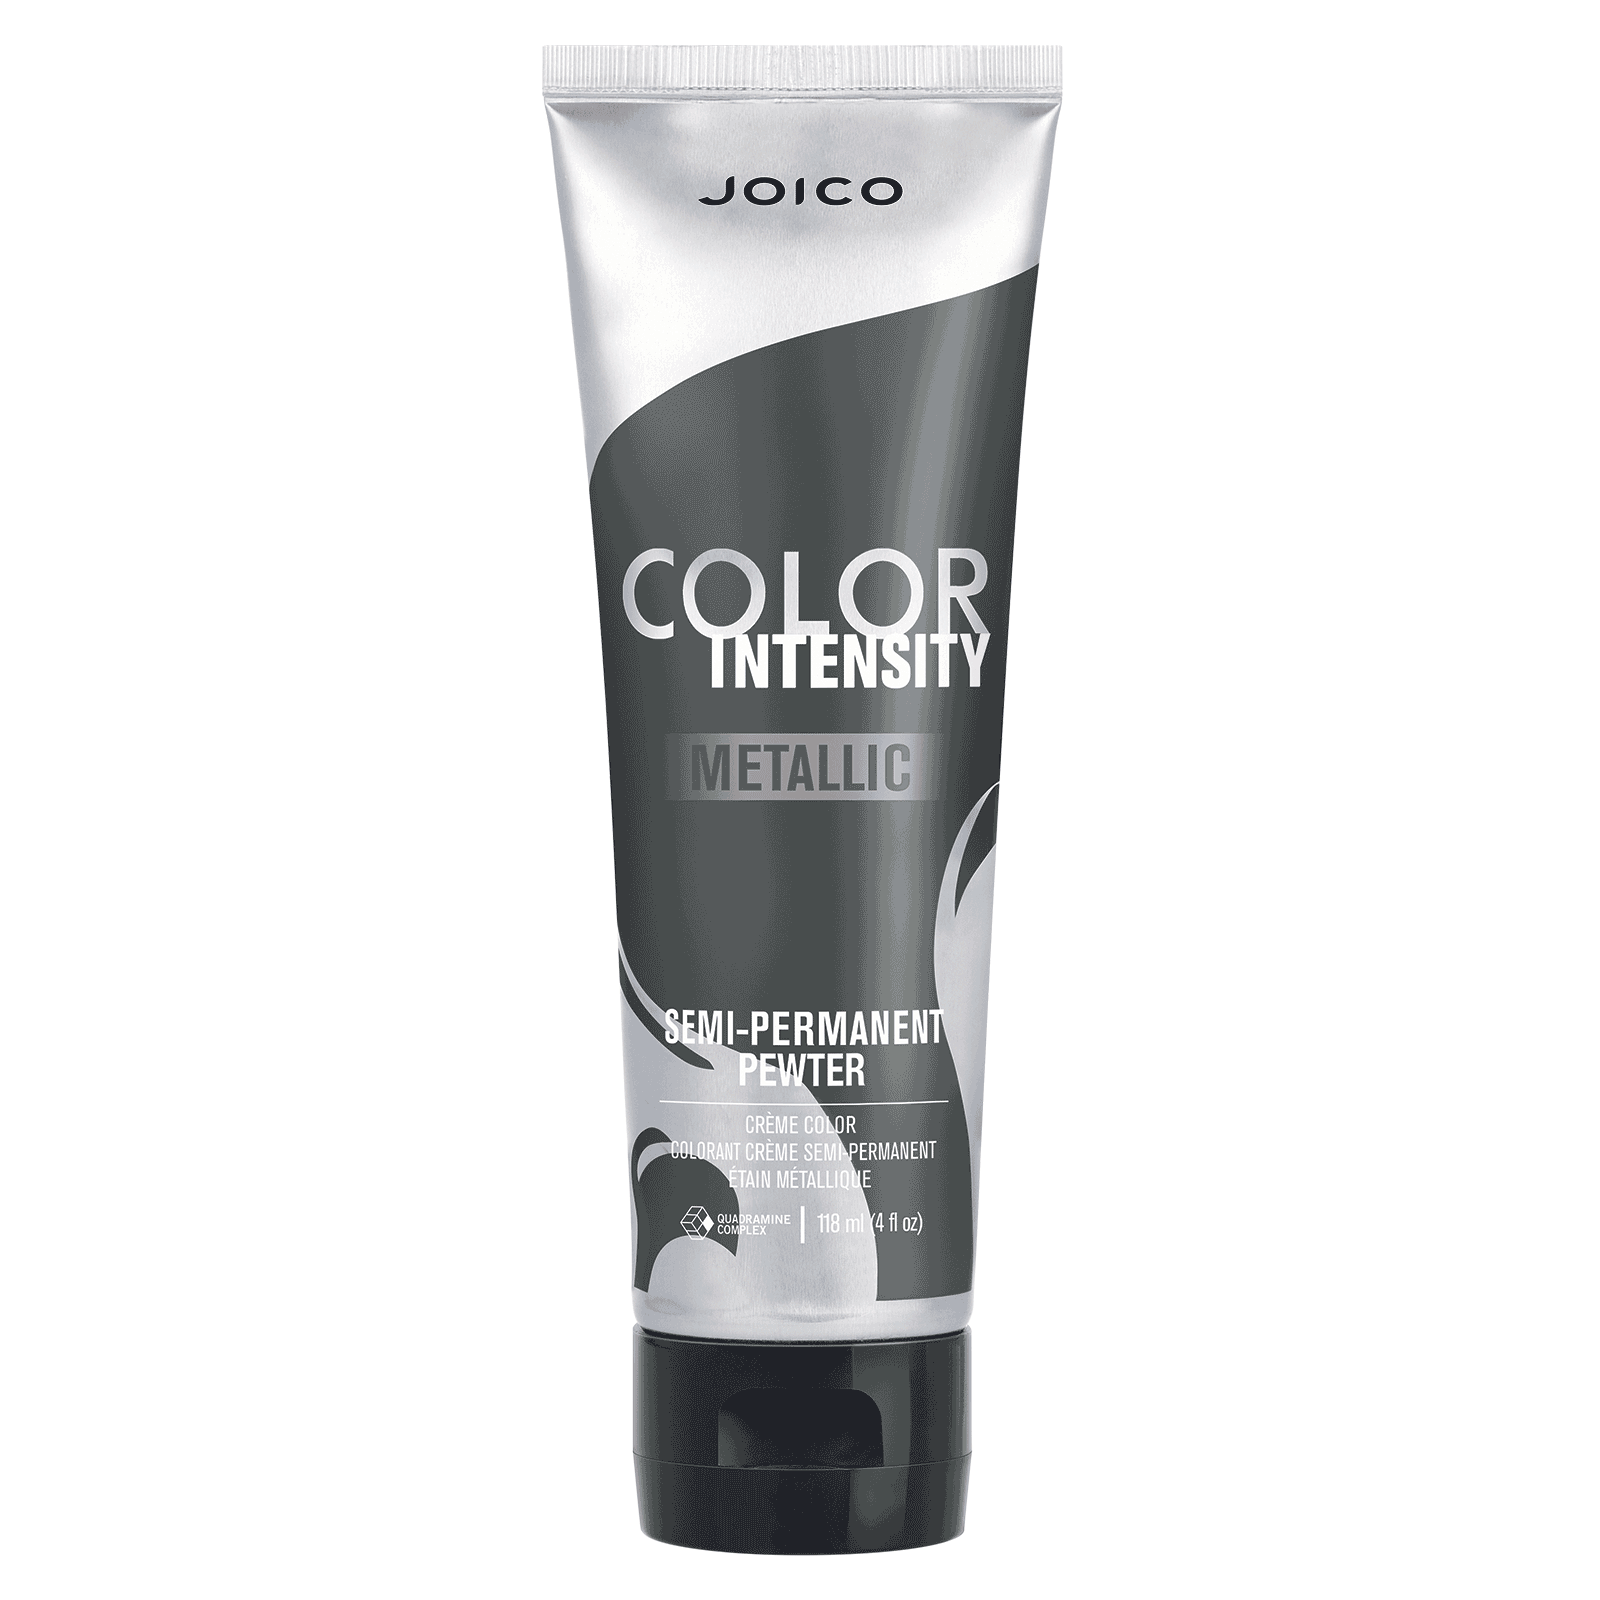 Joico Color Intensity Semi Permanent Pewter 118ml